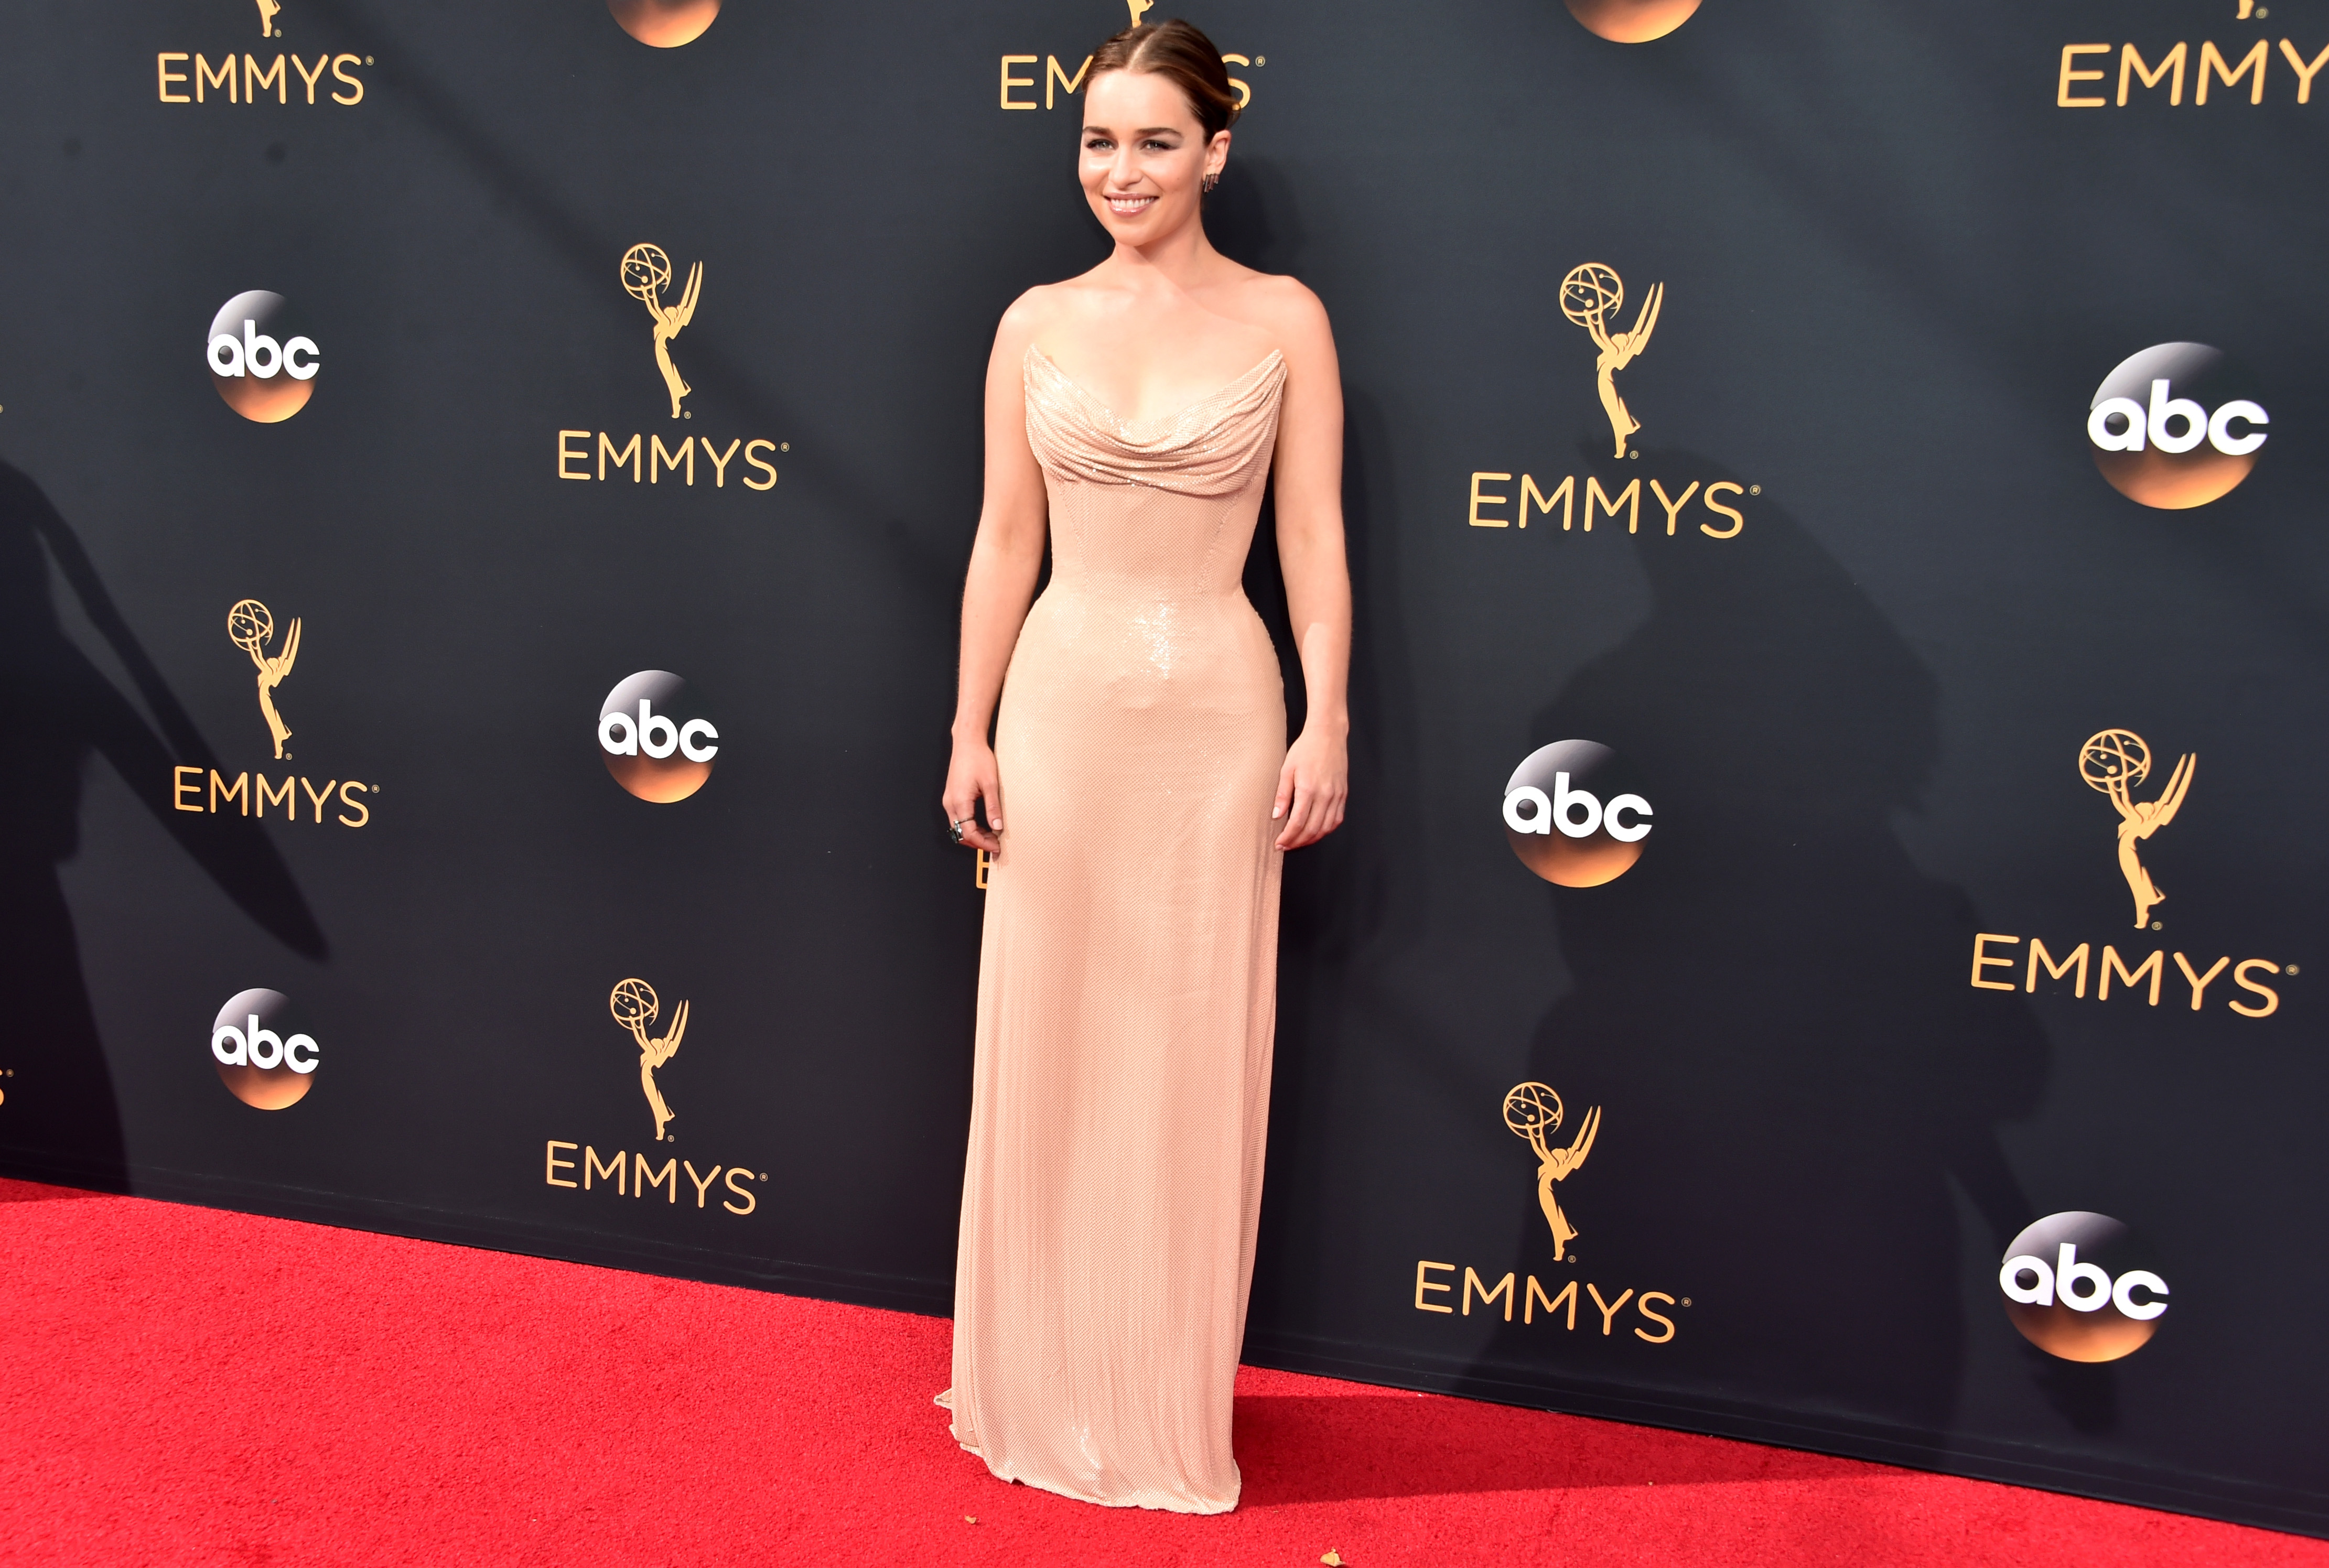 <p>The Emmy's give television stars the opportunity to deliver some Oscar-worthy red carpet action and with so many cinema stars migrating to the small screen, the fashion line shave becomes blurred.</p> <p>With this year's awards a mere sleep away we look back at the bigfashion names such as Prada, Versace and Valentino got in on the action, lifting fashion ratings to an all time high at the 2016 Emmy Awards.</p> <p>Here is our Top 10 best looks from last year.</p> <p> 10) Emilia Clarke, Atelier Versace</p>